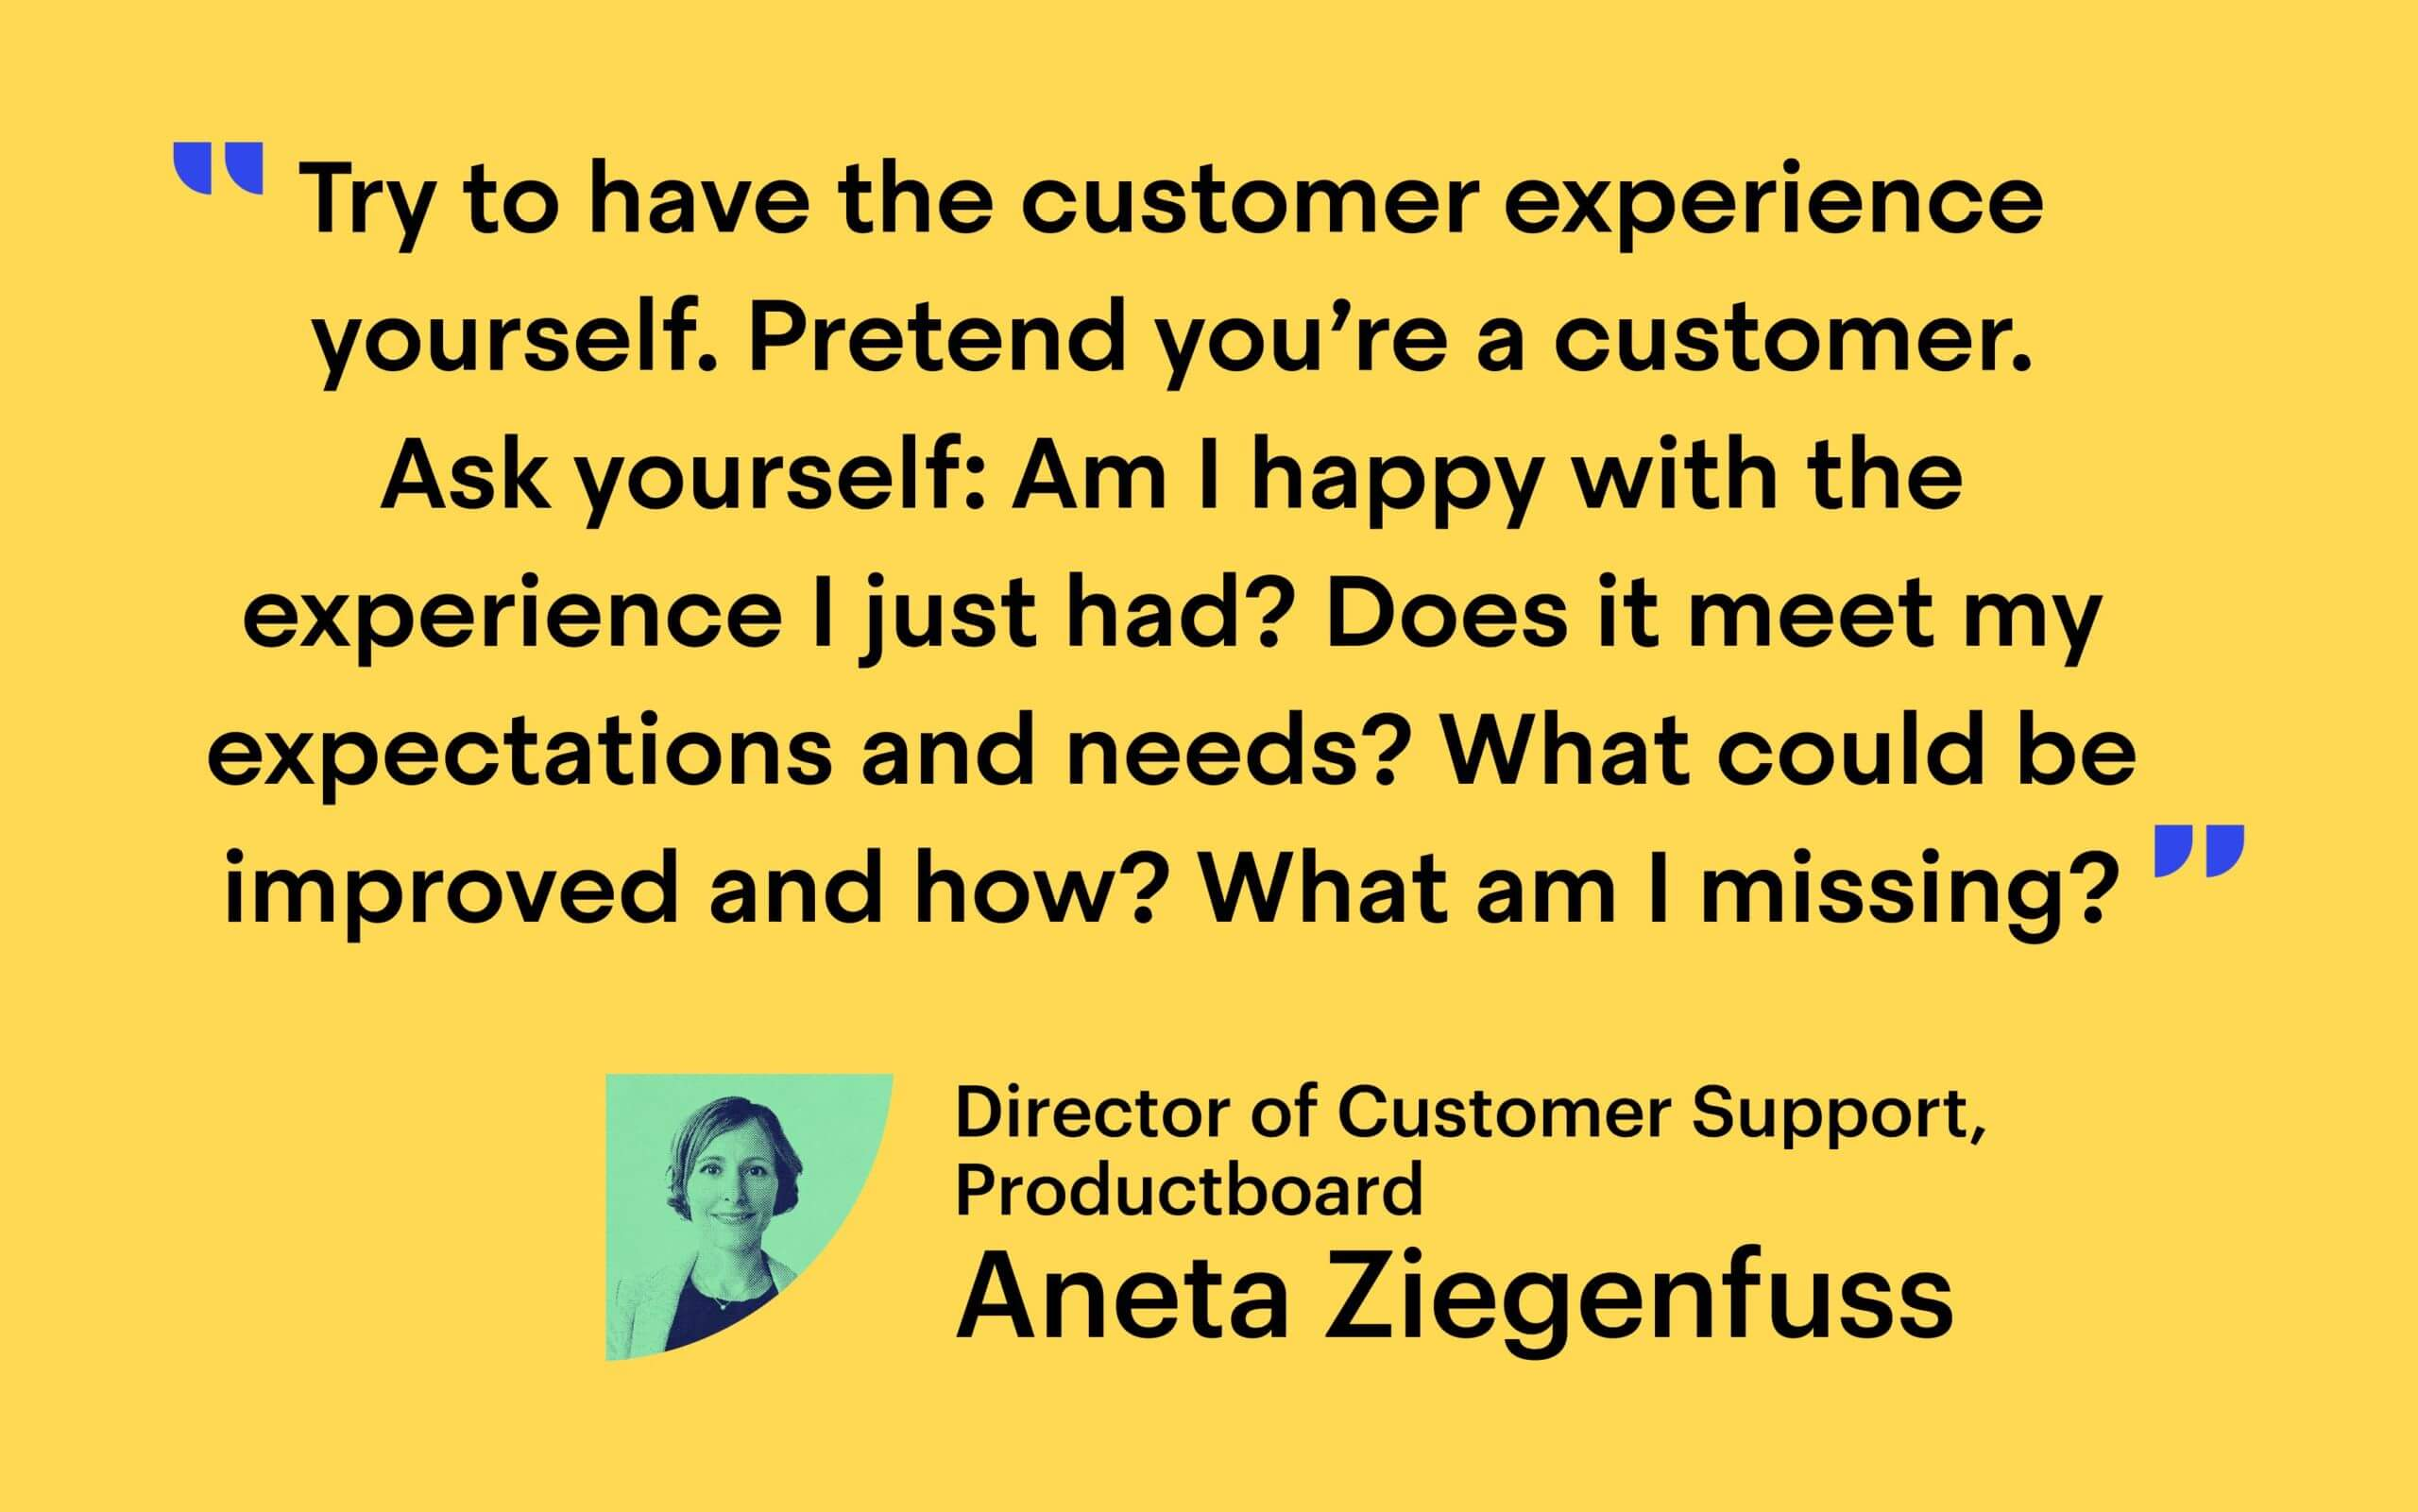 """""""Try to have the customer experience yourself,"""" she said. """"Pretend you're a customer. Ask yourself: 'Am I happy with the experience I just had? Does it meet my expectations and needs? What could be improved and how? What am I missing?'"""" - Aneta Ziegenfuss, Director of Customer Support at Productboard"""